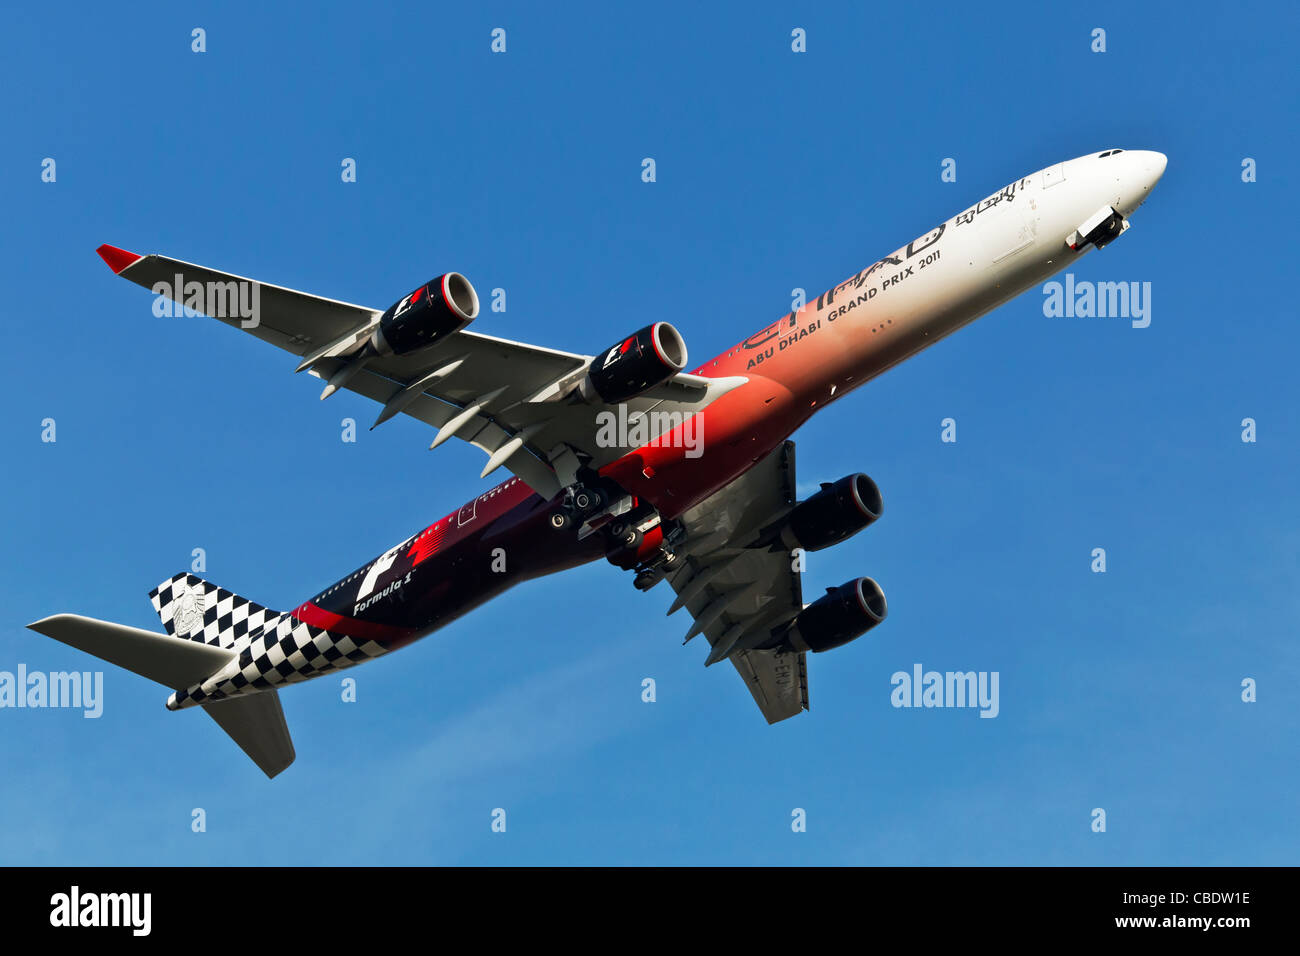 An Airbus A340 of the Abu Dhabi airline Etihad in F1 special colours - Stock Image